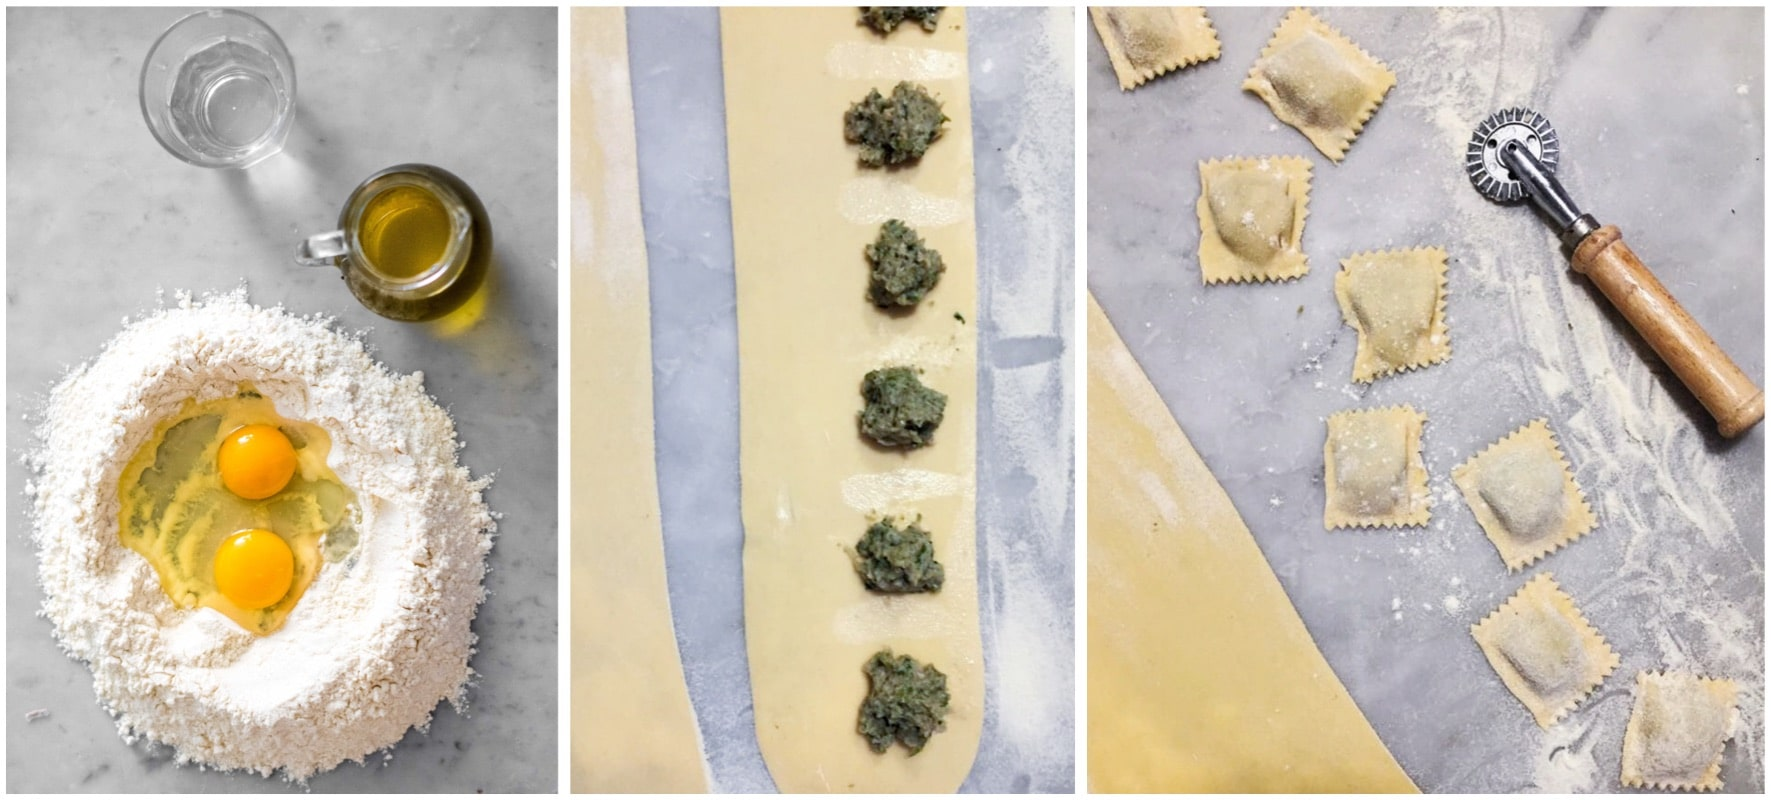 Genoese meat ravioli making